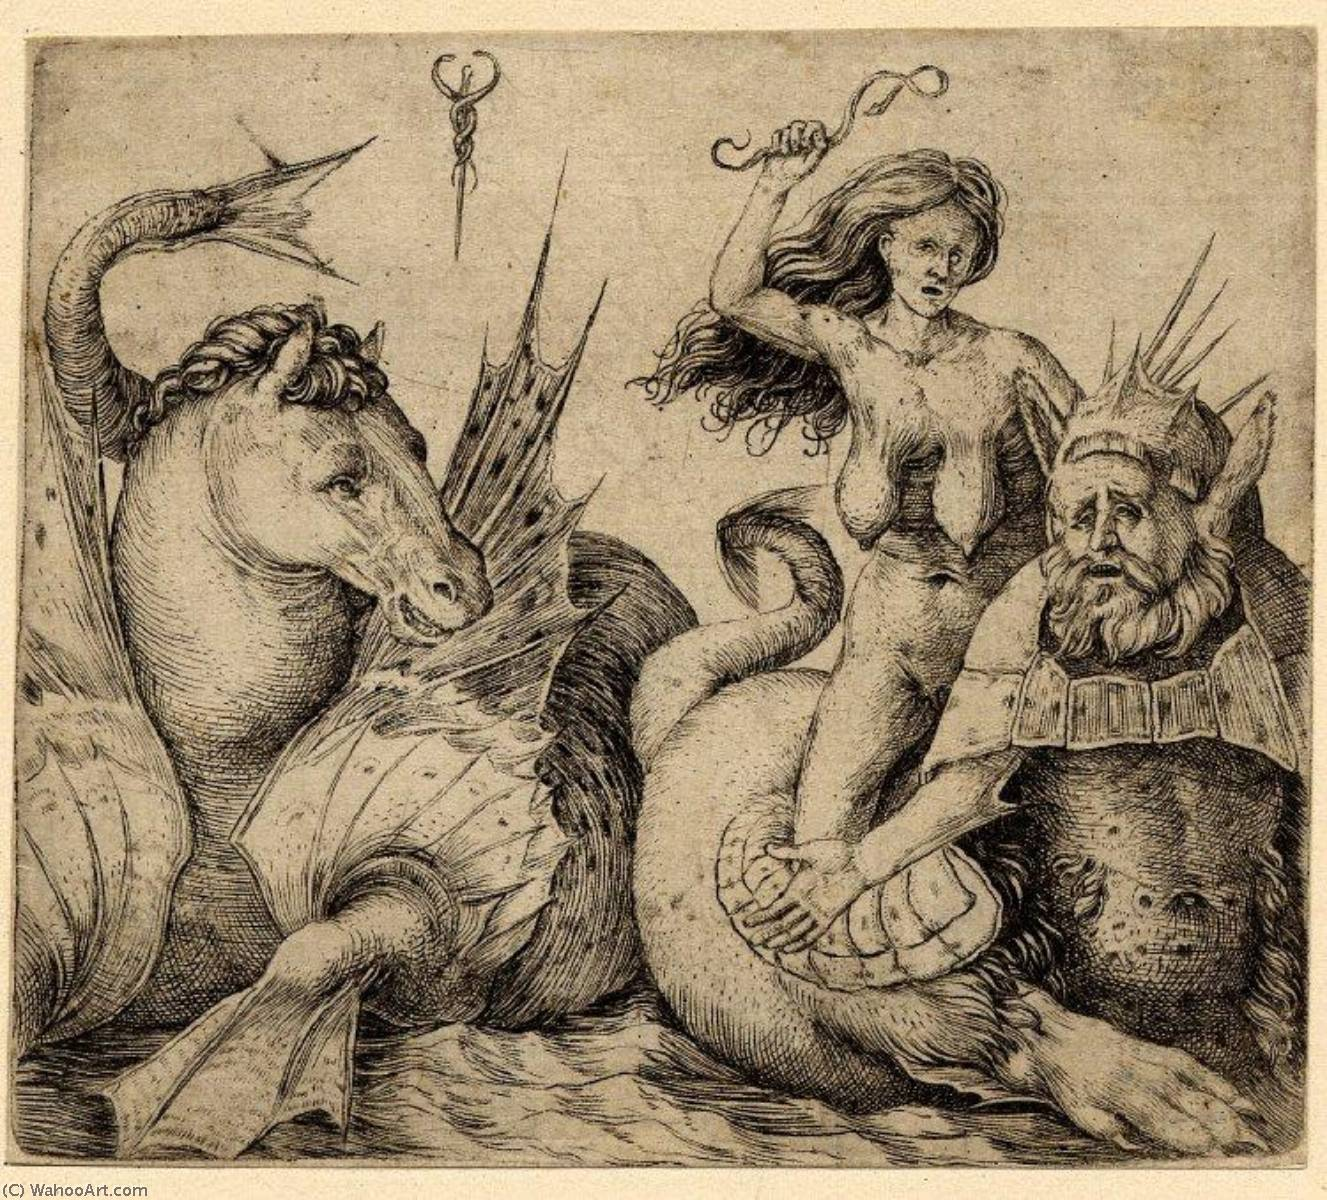 An naked old woman riding on a triton, Engraving by Jacopo Barbari (1460-1516)